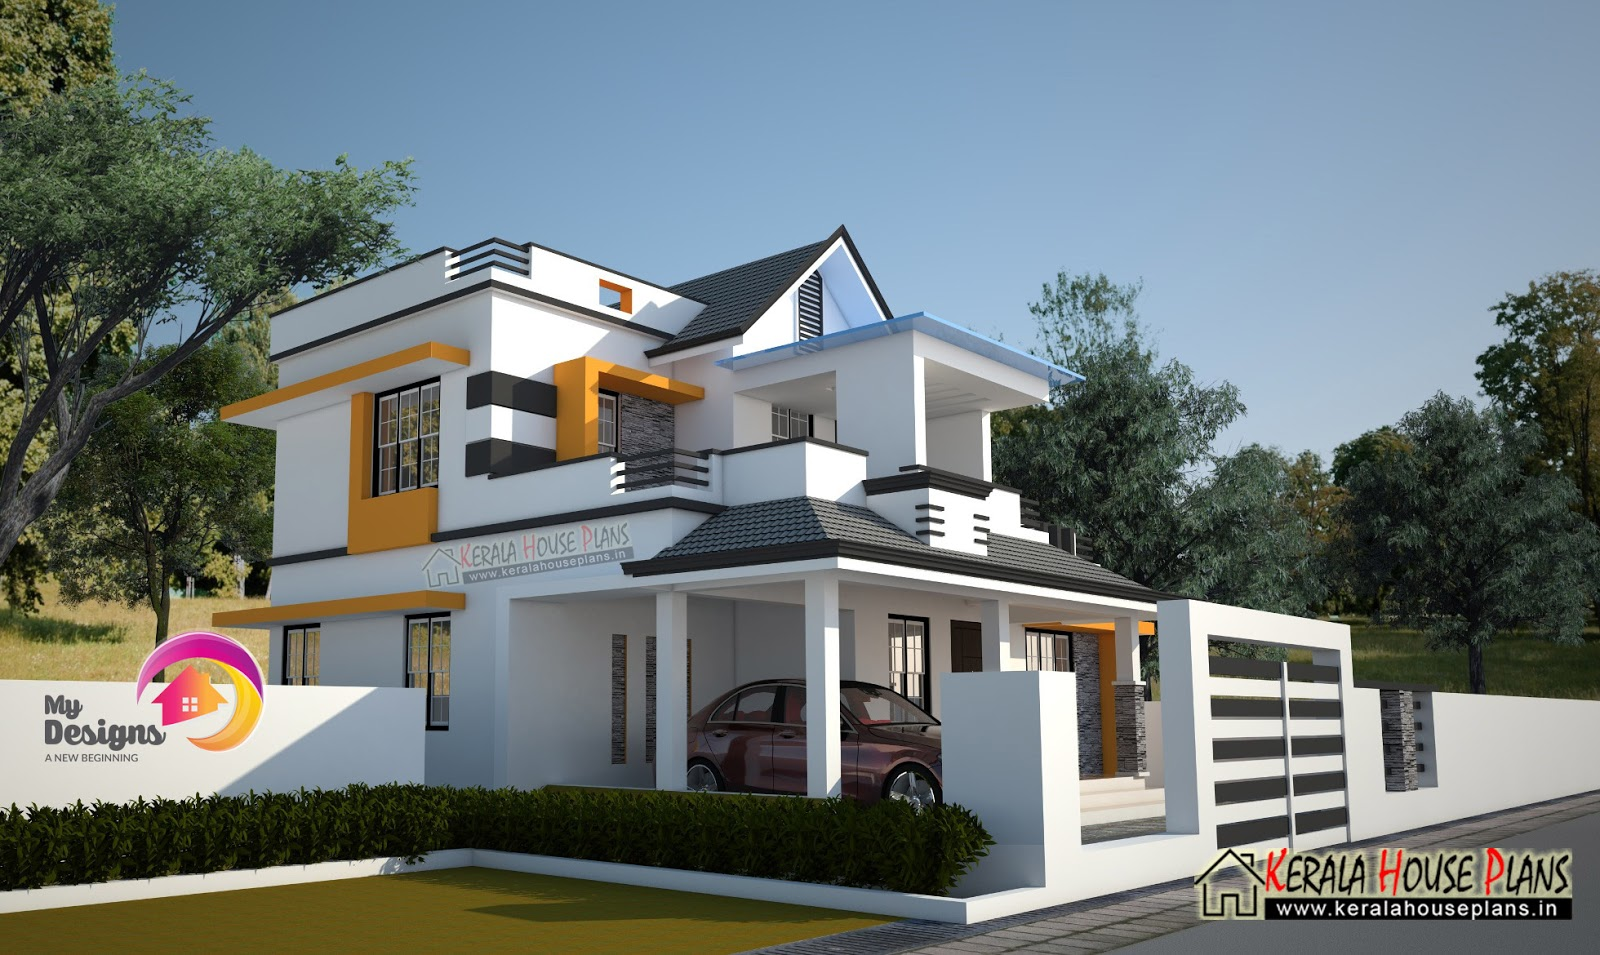 3 bedroom 2 story house design kerala house plans for House blueprint designer